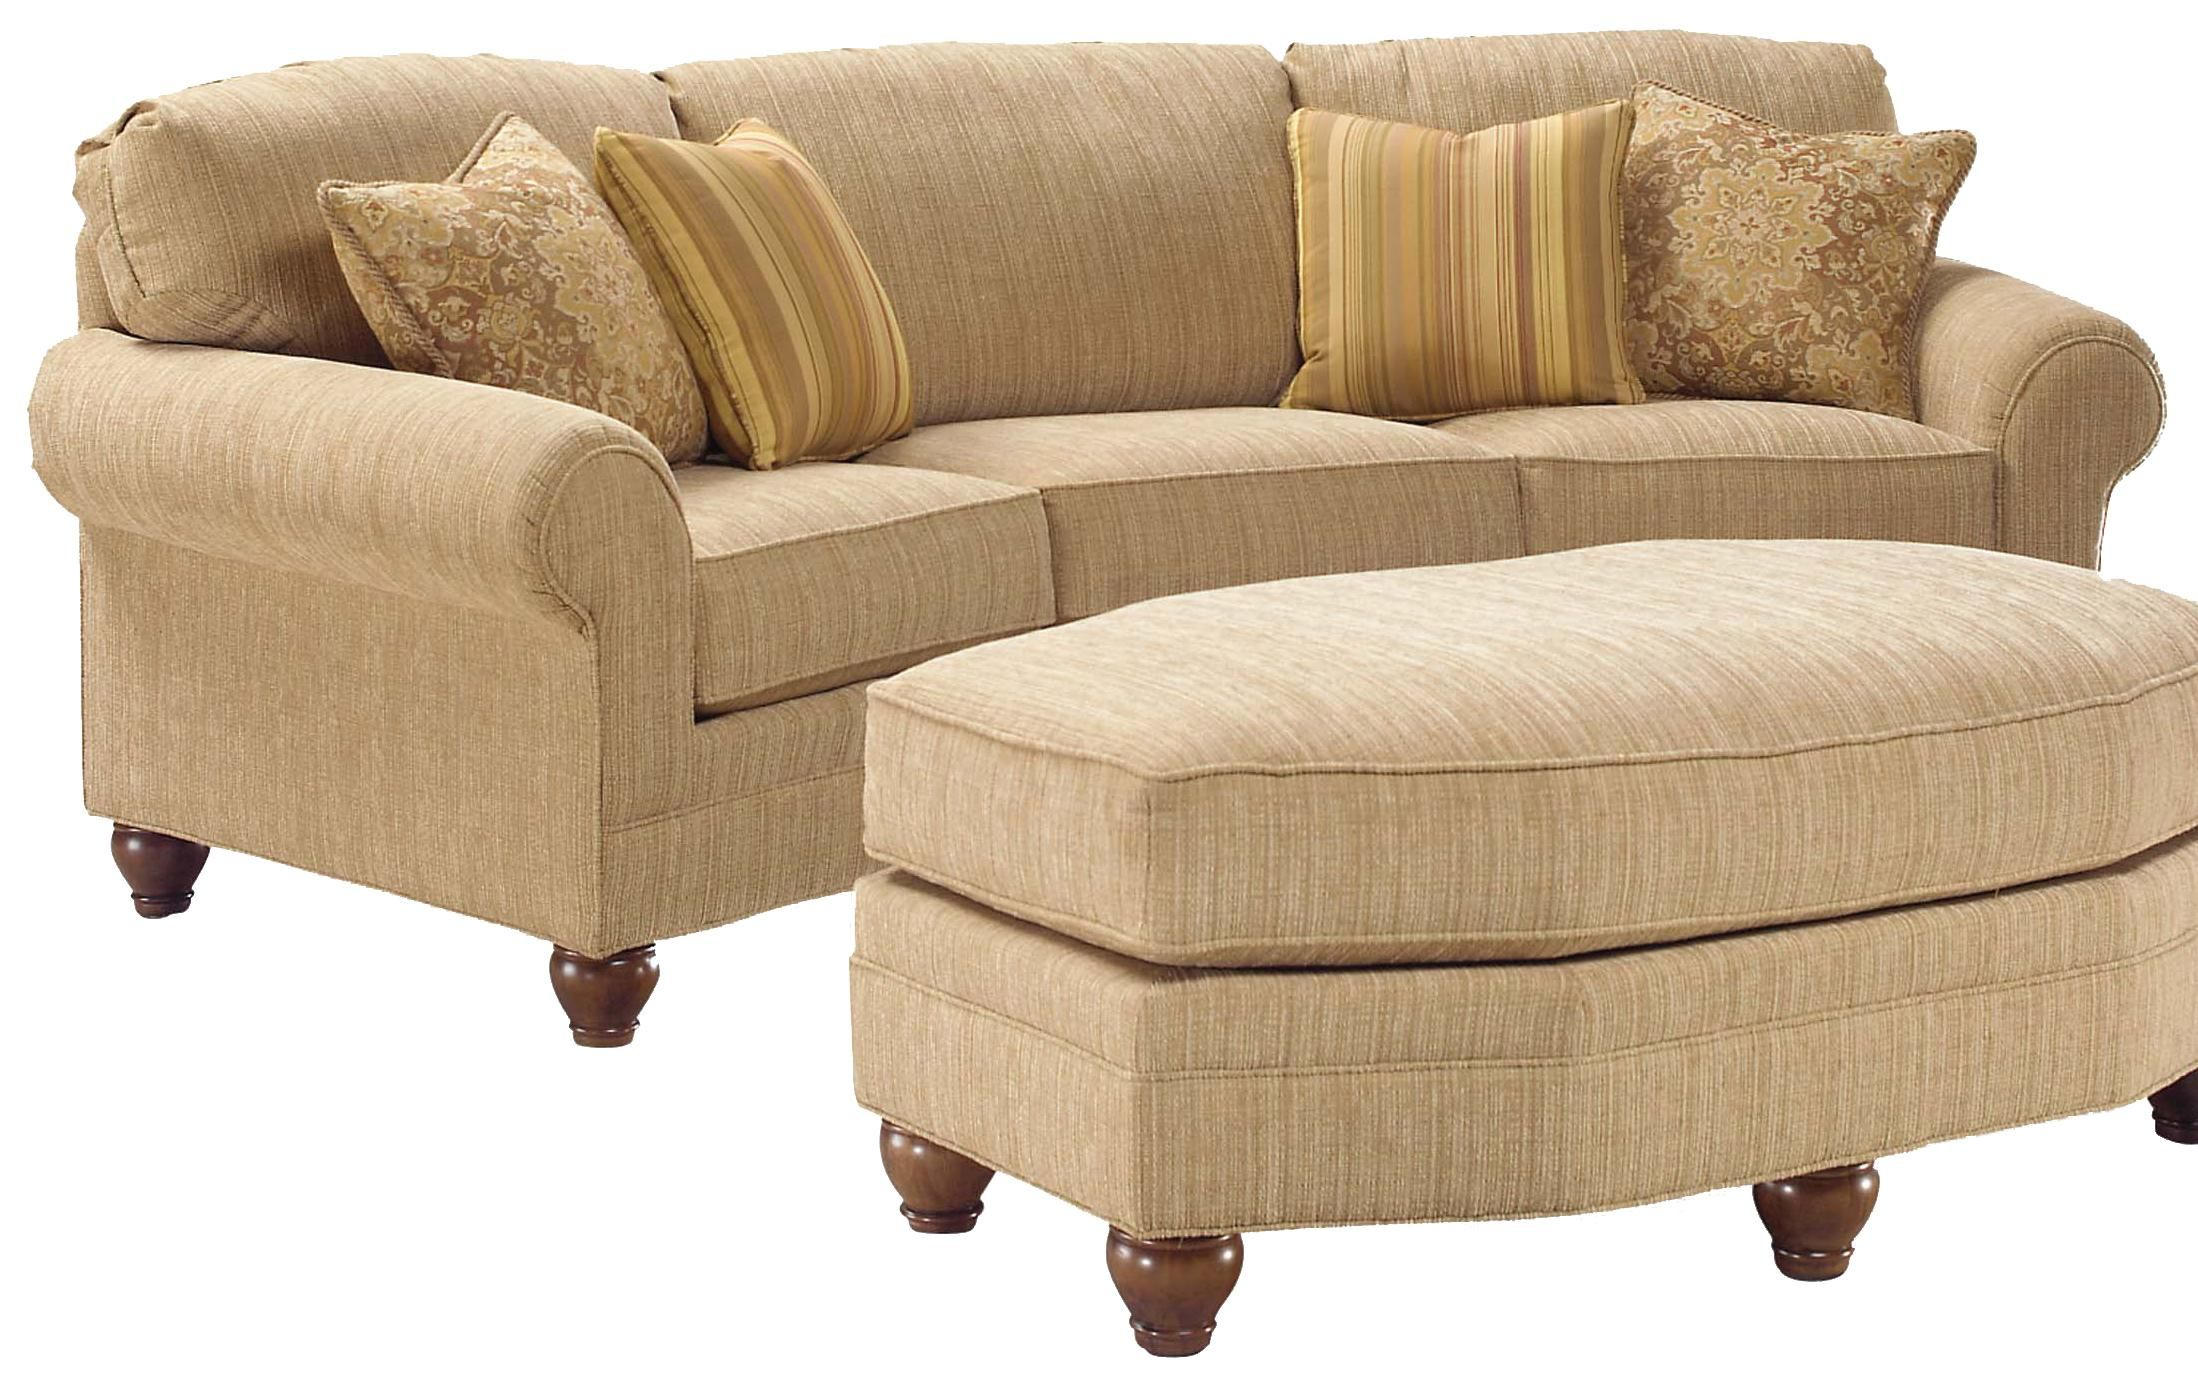 3768 Curved Sofa By Fairfield With